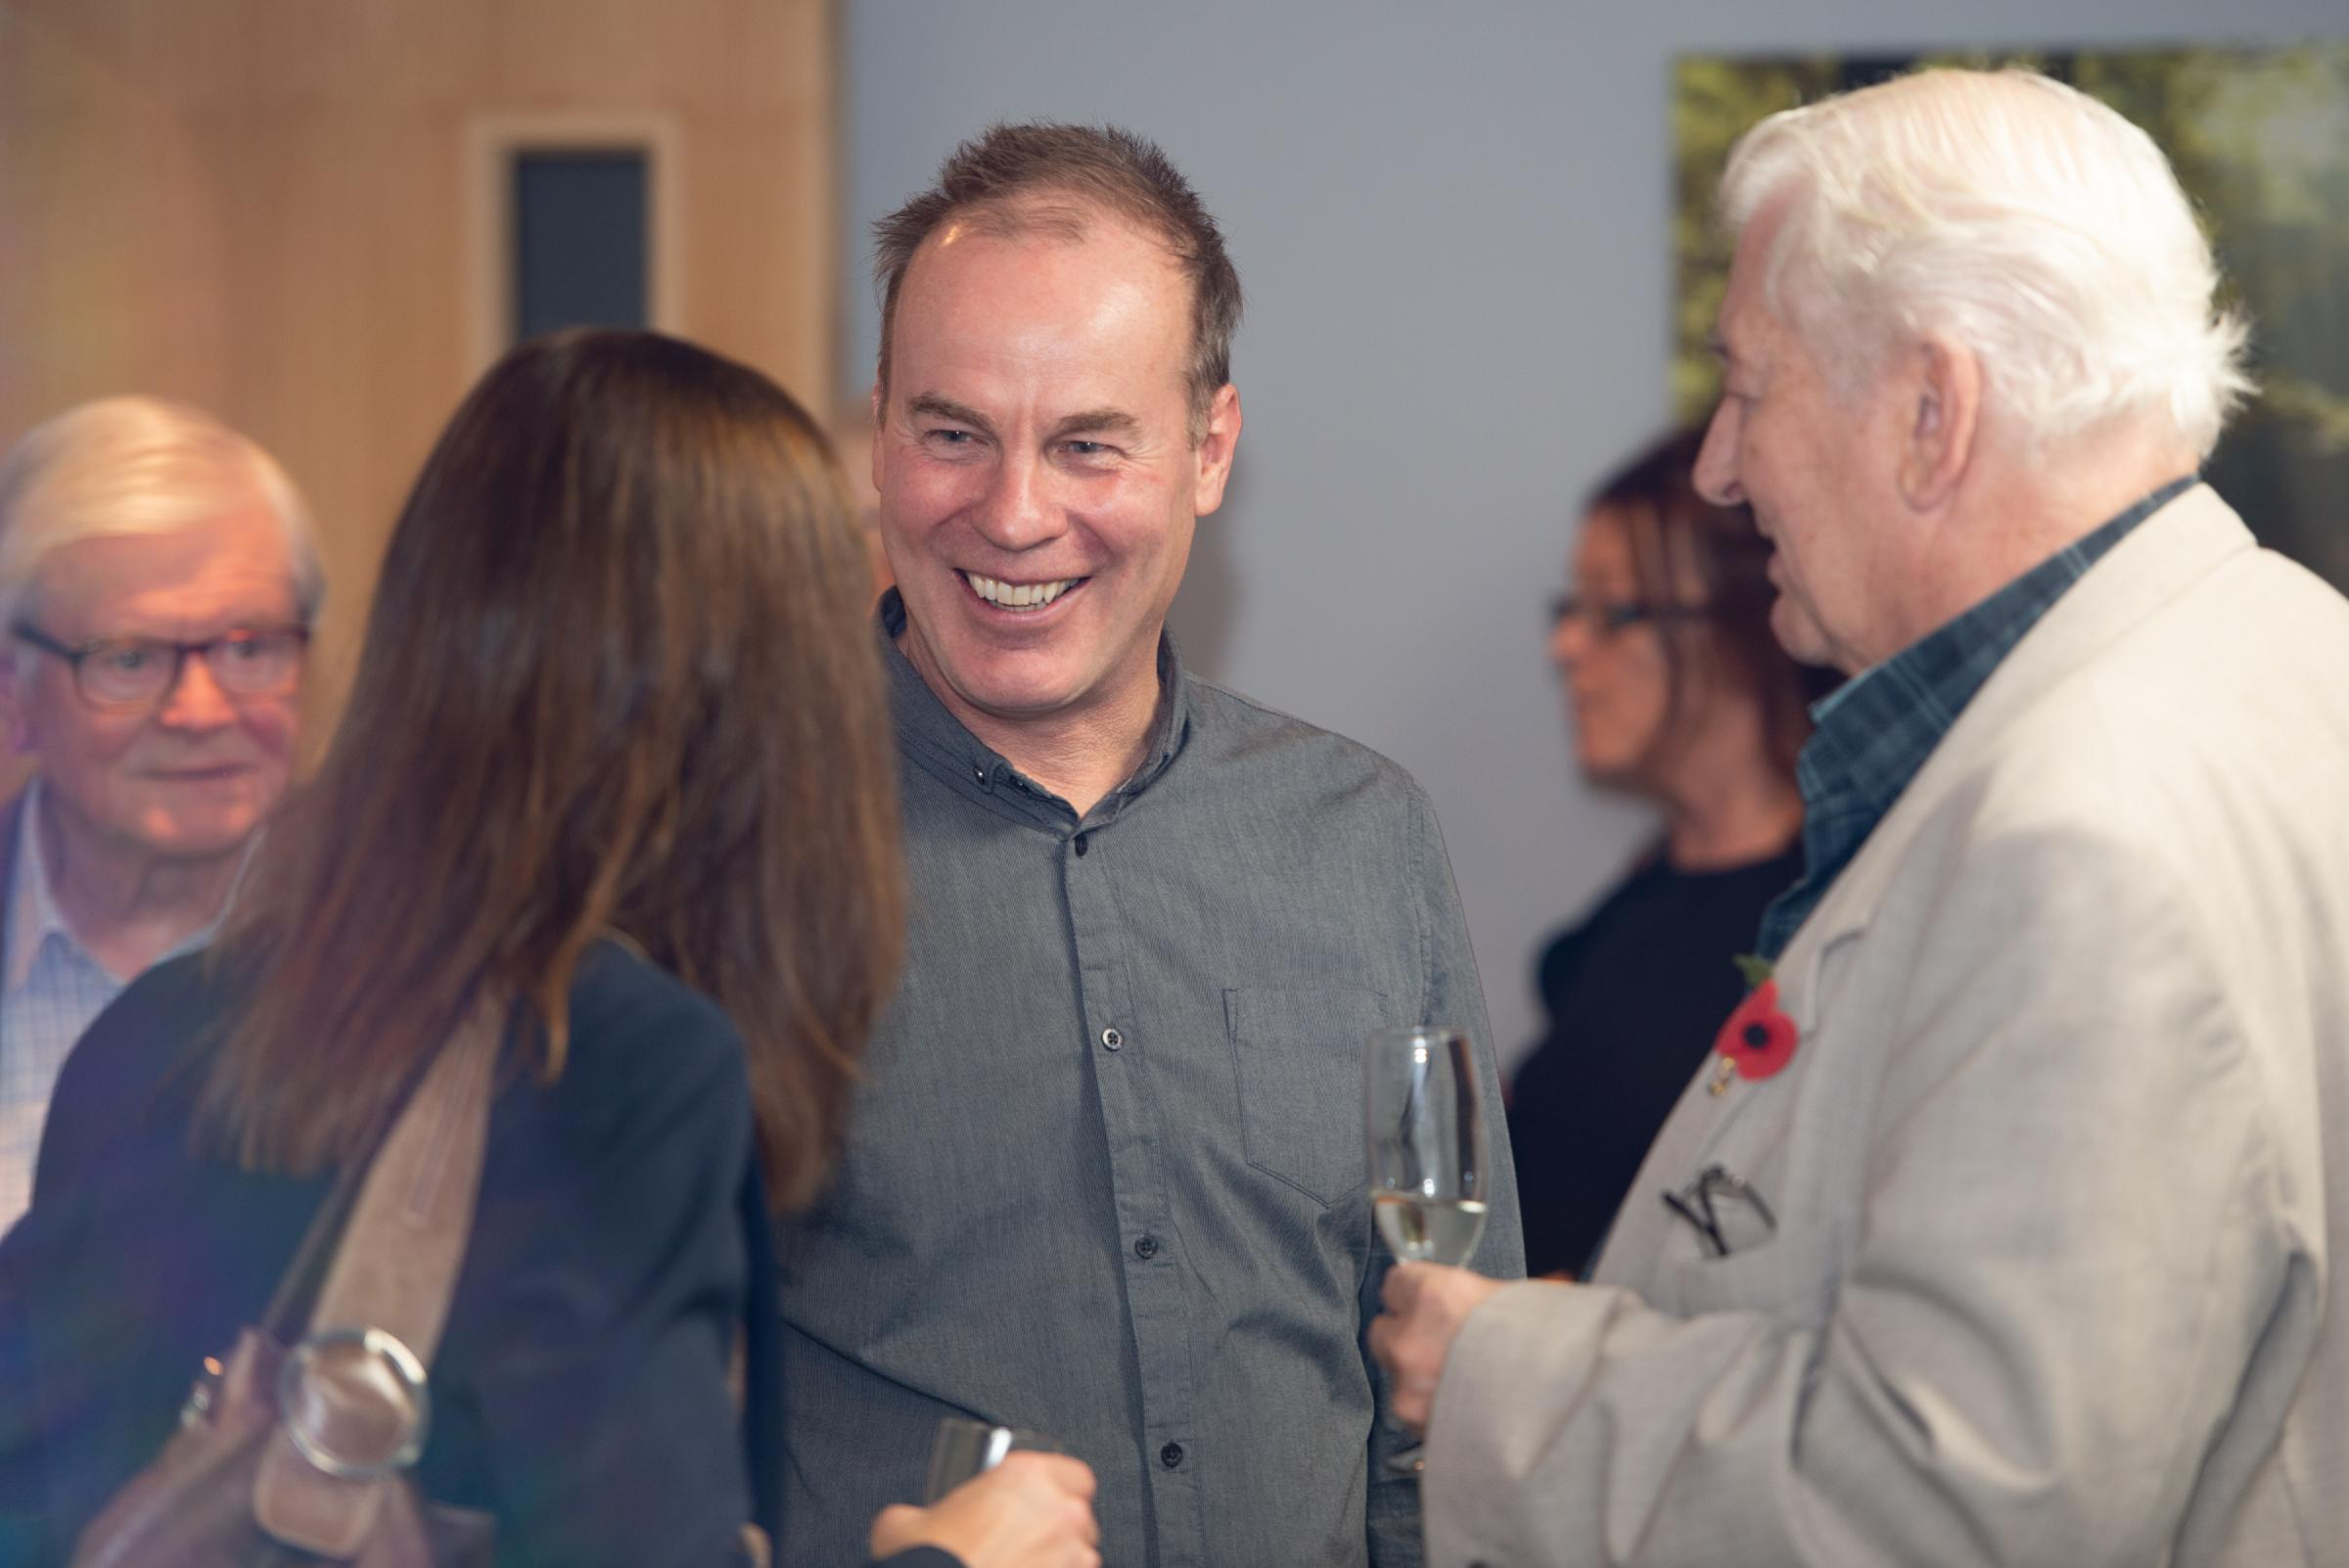 Mike Jennings with guests at the Mentors celebration. Picture Jacqueline Cross